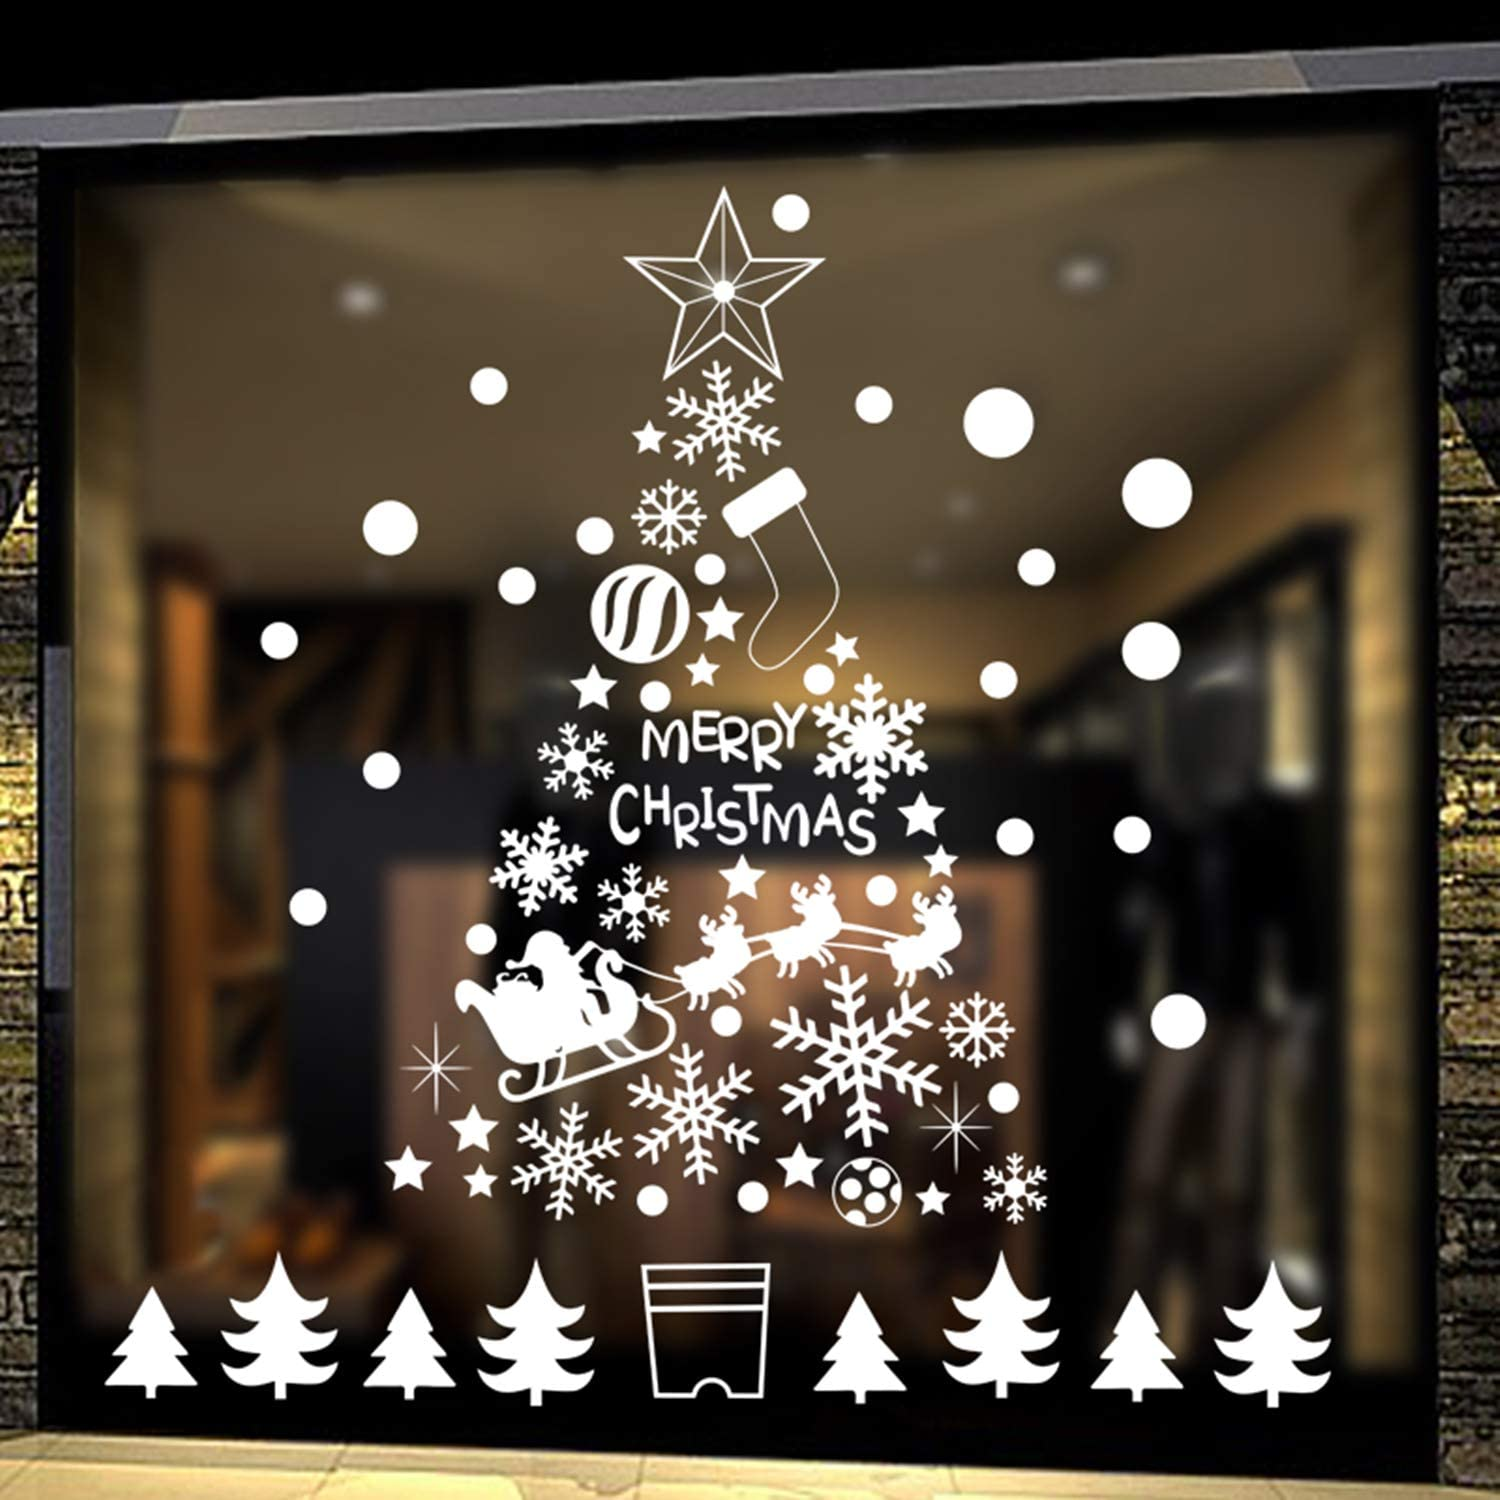 Amazon Com Diy Christmas Tree Window Stickers White Snowflakes Window Clings Wall Decal Removable Christmas Deers Window Decorations Snowflakes Santa Claus Glass Sticker For Christmas Window Display Decoration Home Kitchen